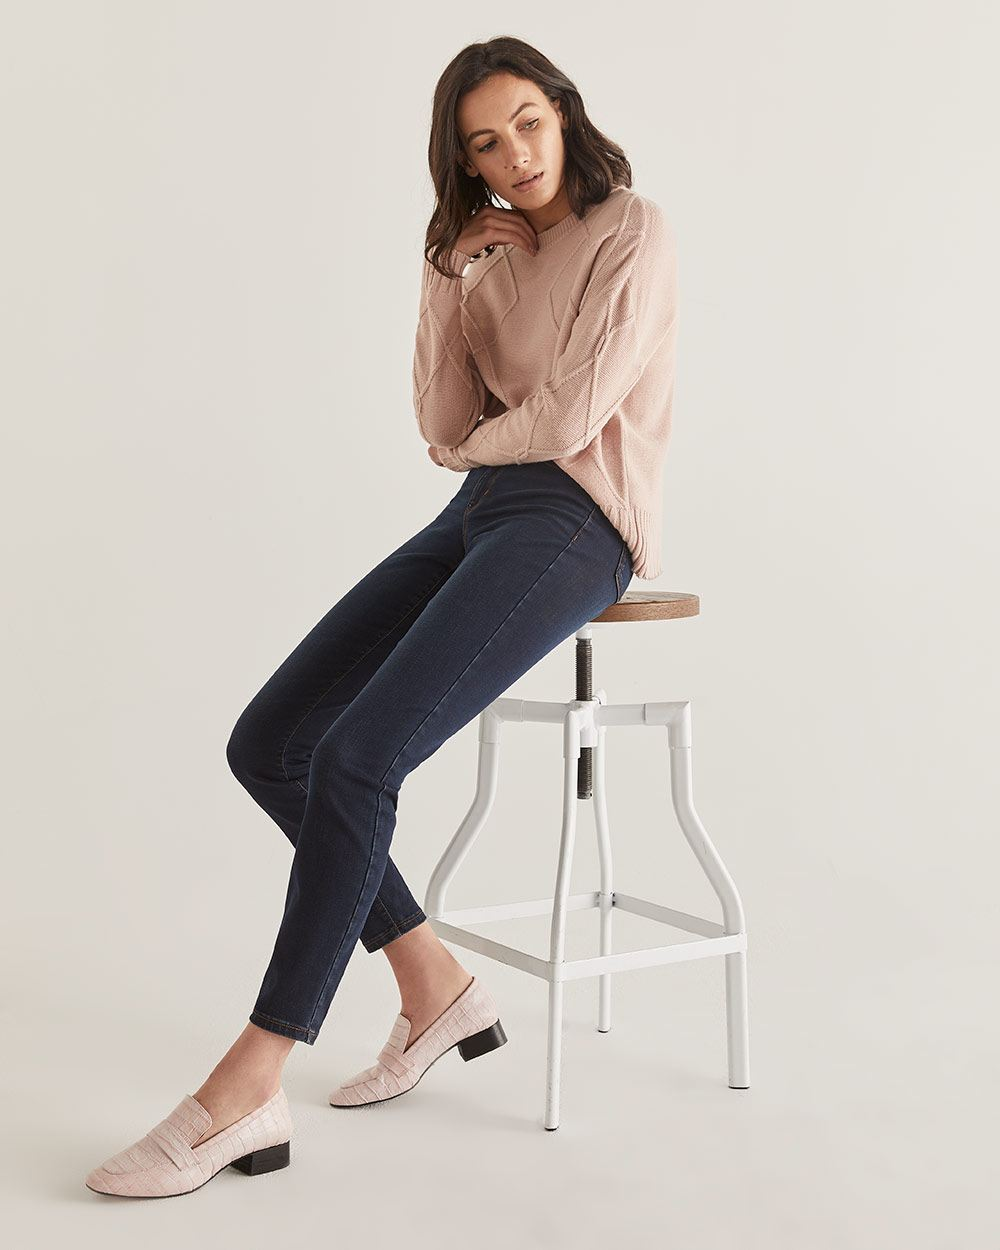 The Tall Sculpting Dark Wash Skinny Jeans